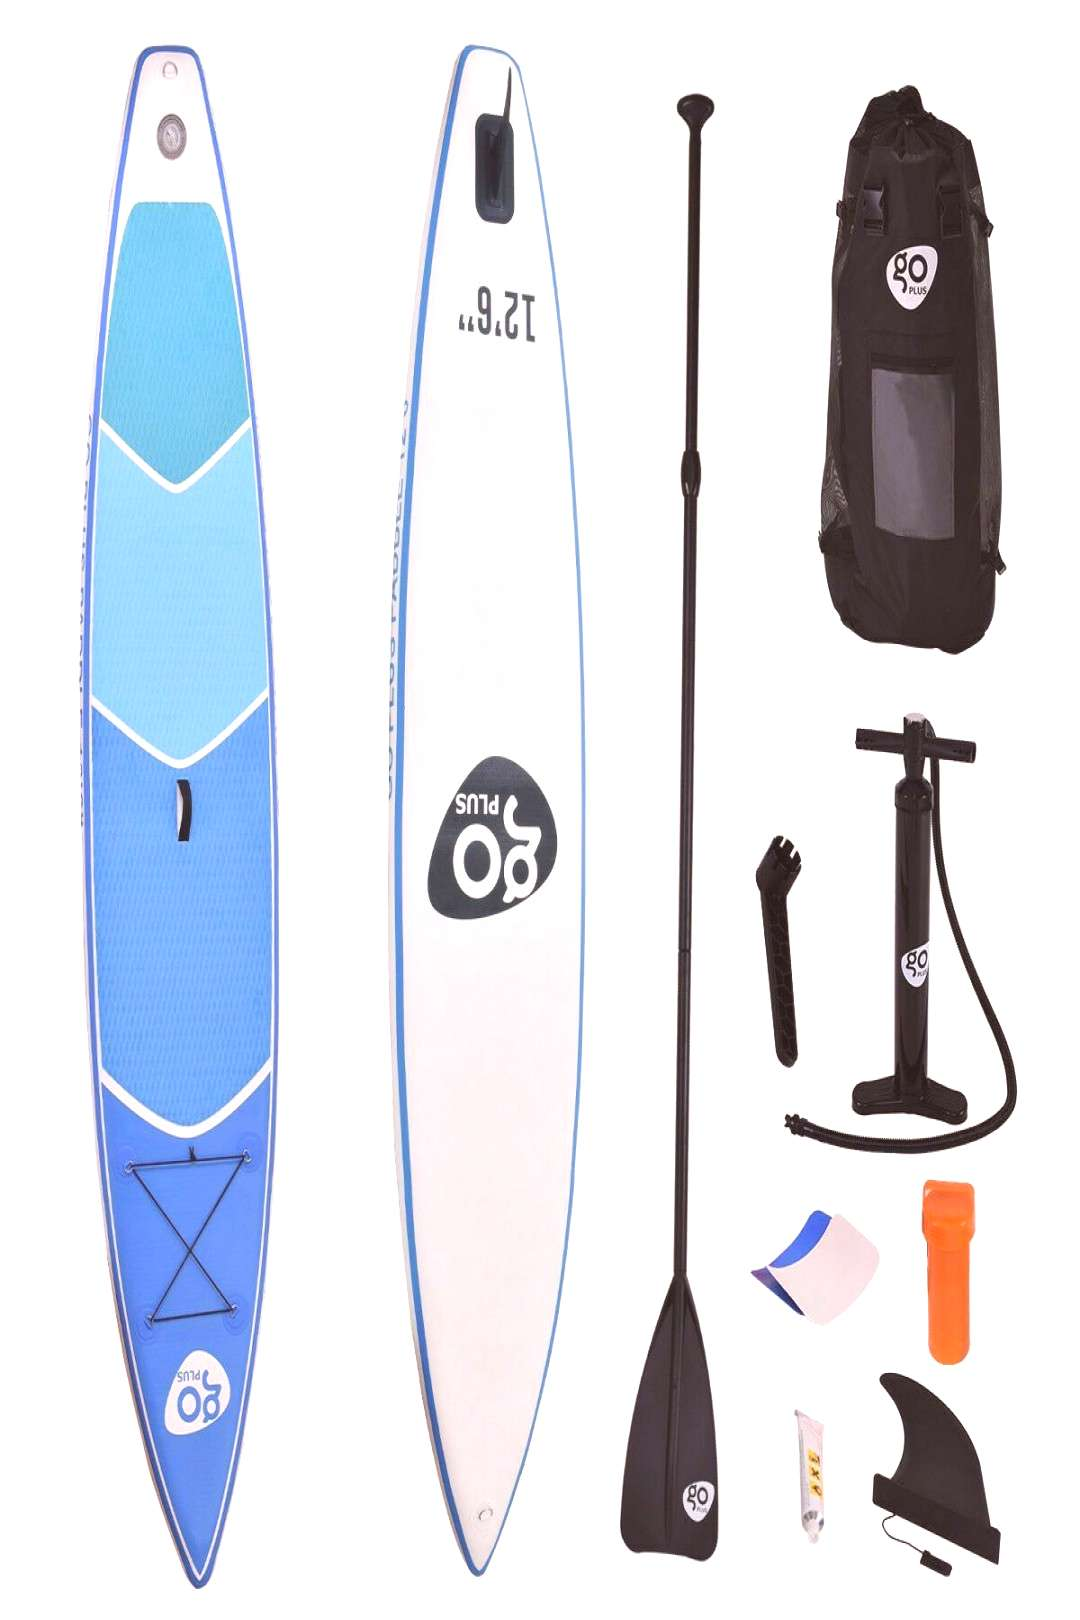 12.5 Inflatable Stand Up Paddle Board w- Paddle